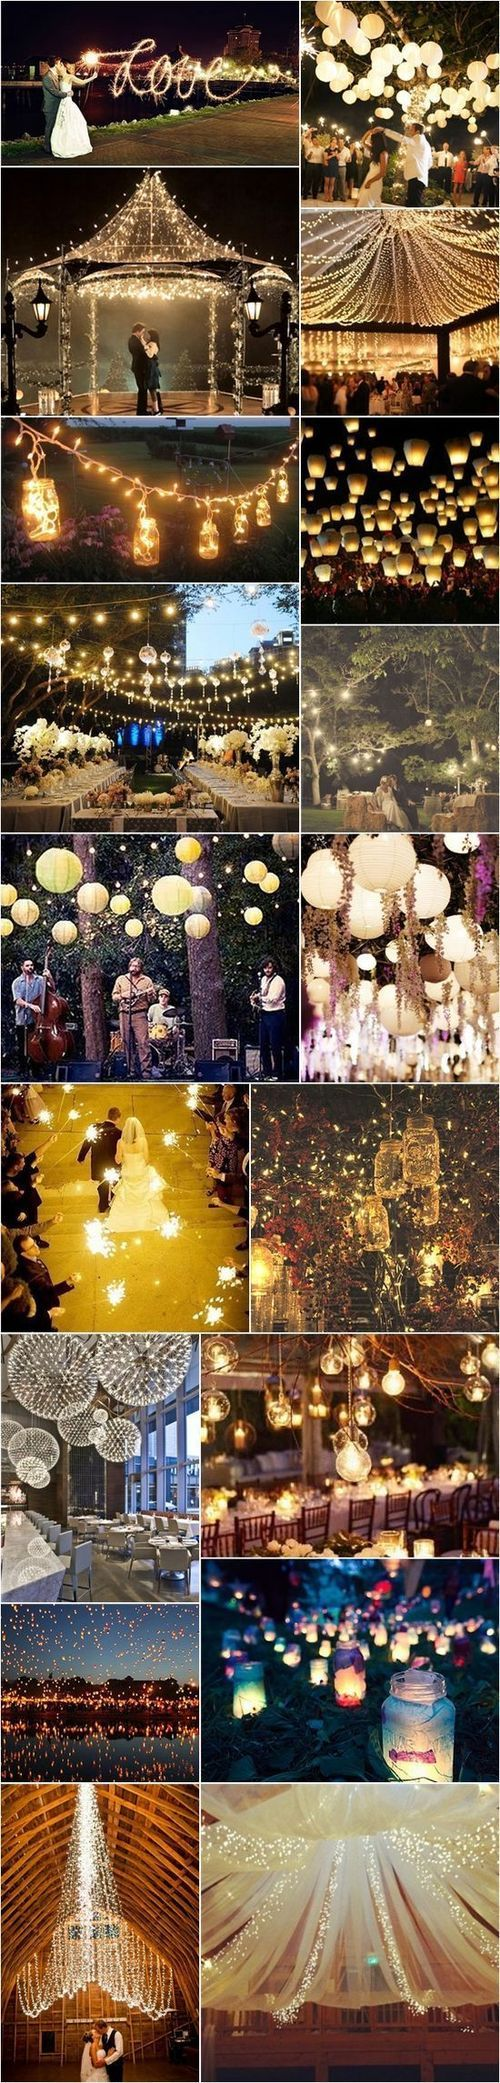 Hanging lights wedding decor   best Sneaky Wedding images on Pinterest  Wedding ideas Wedding